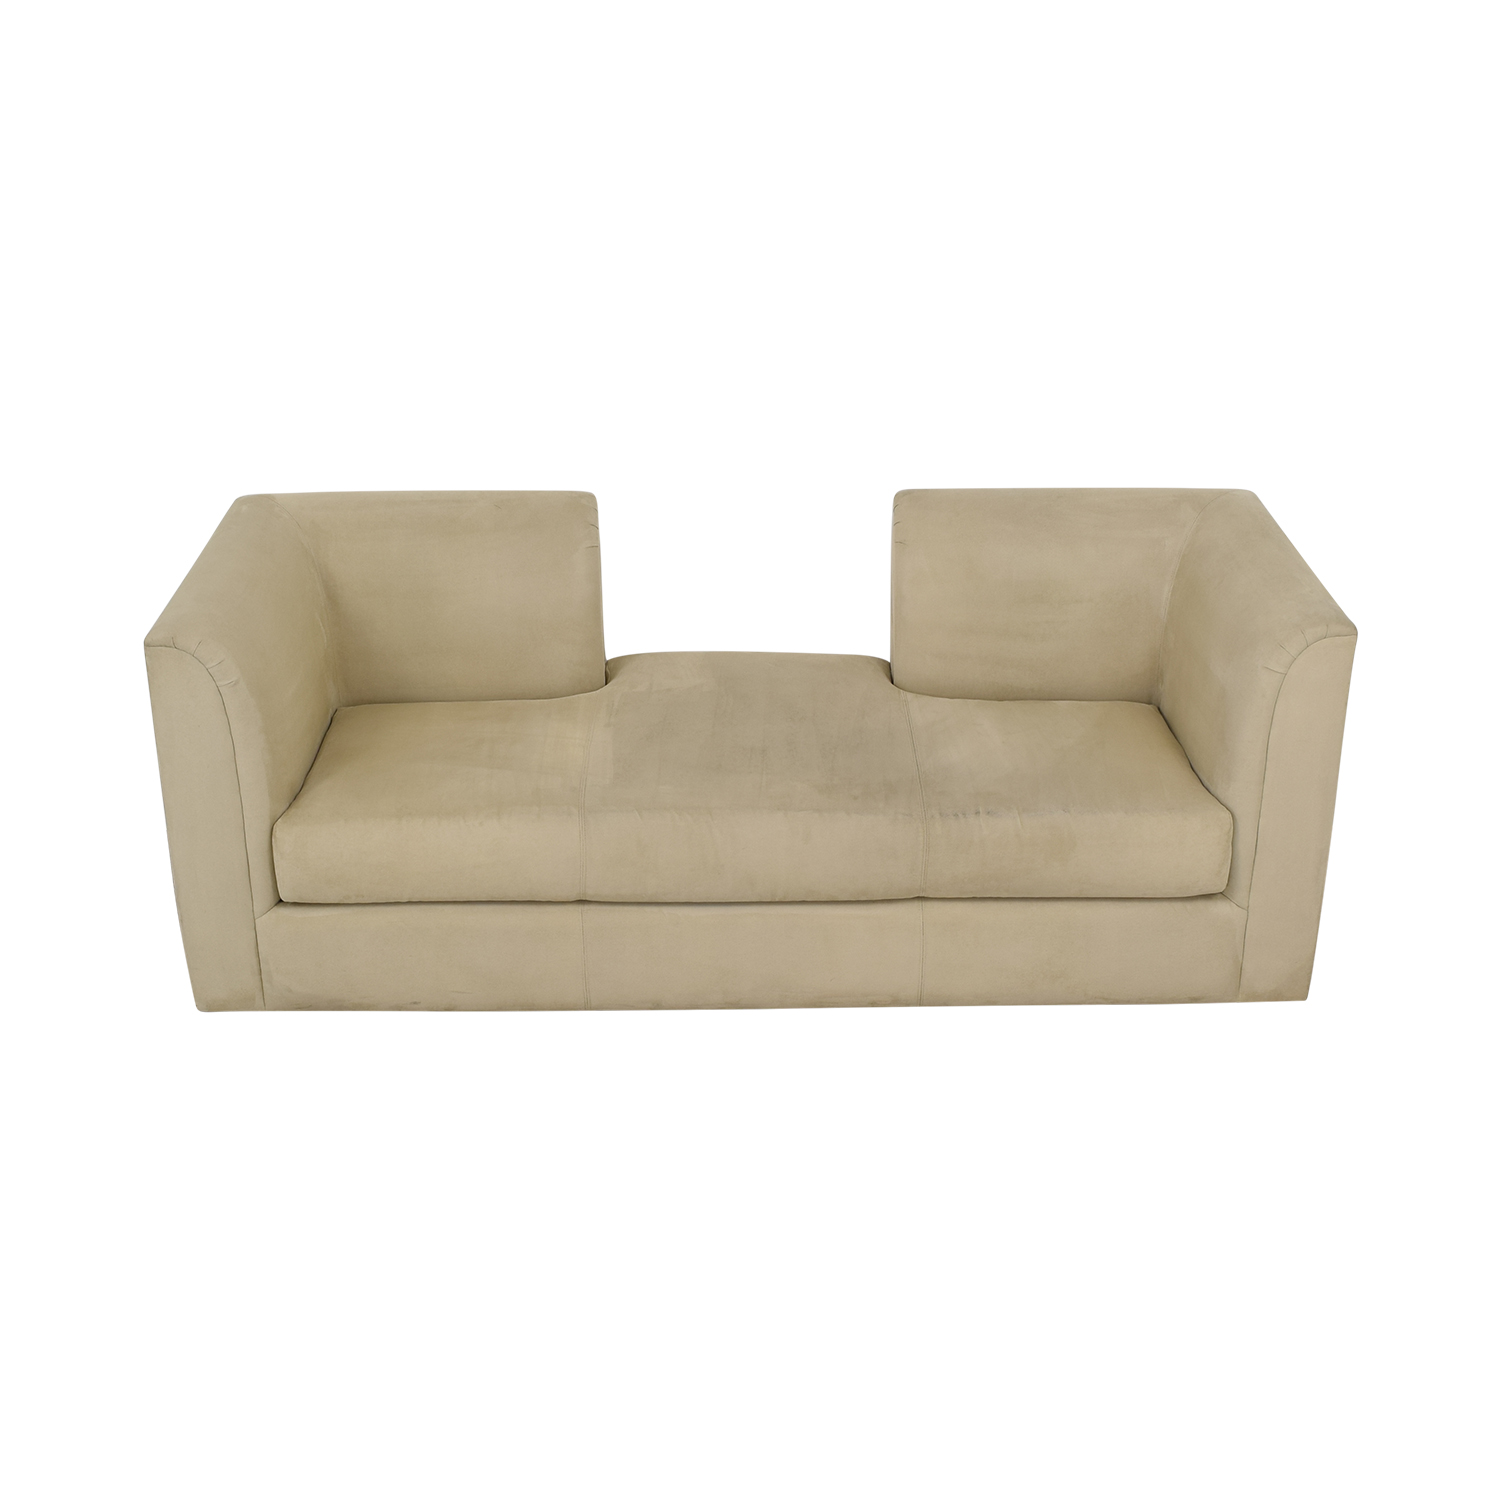 Custom Single Cushion Sofa on sale